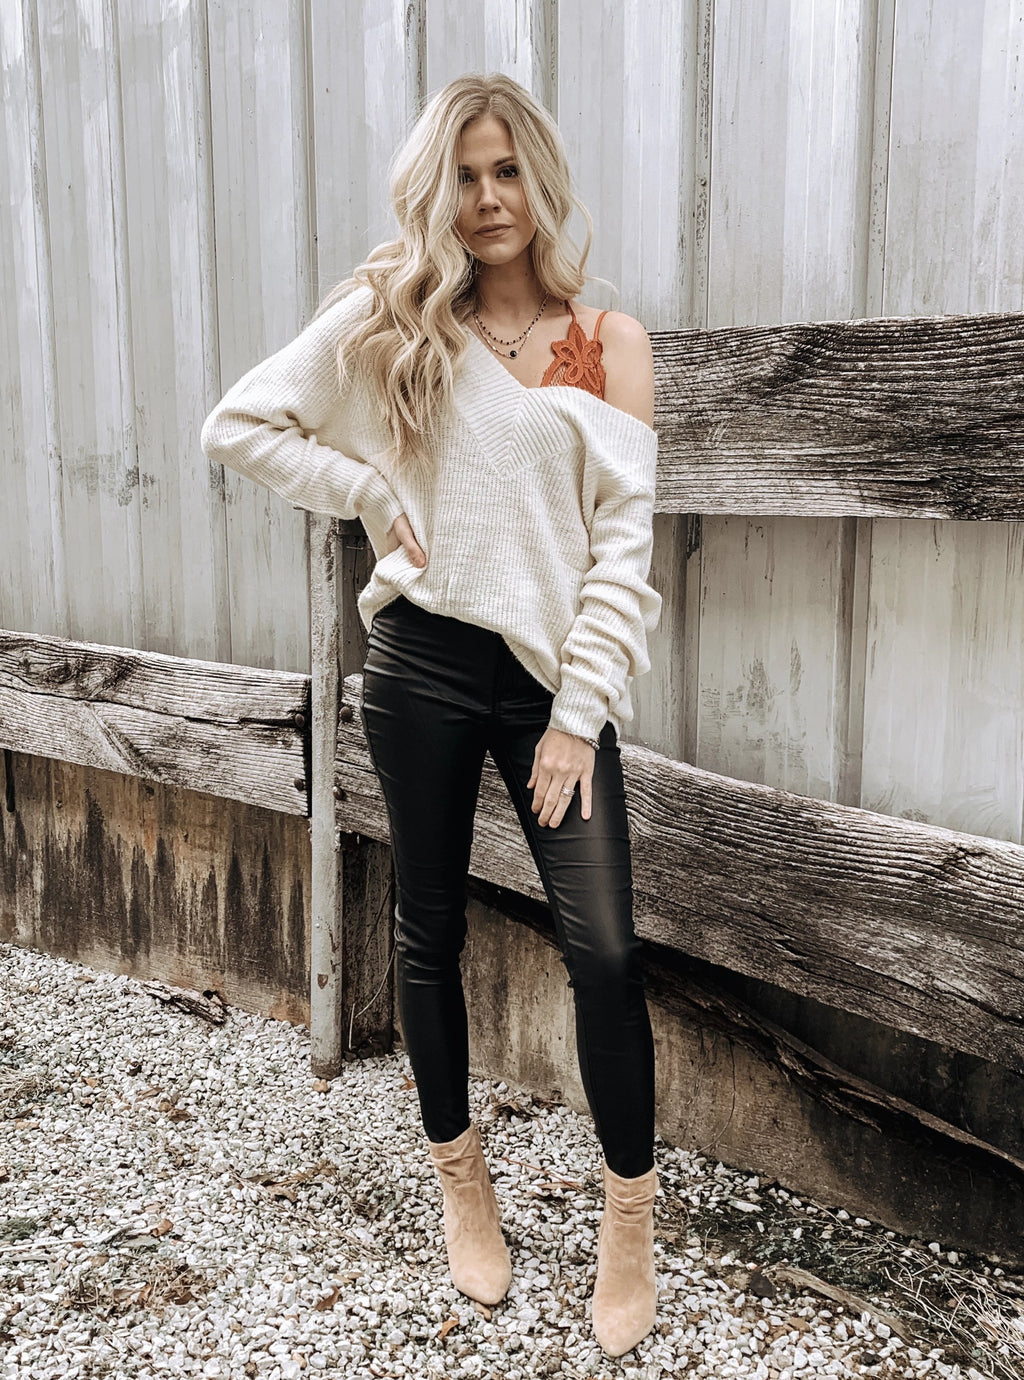 Deep V-neck Sweater in Winter White - Enclothe Boutique